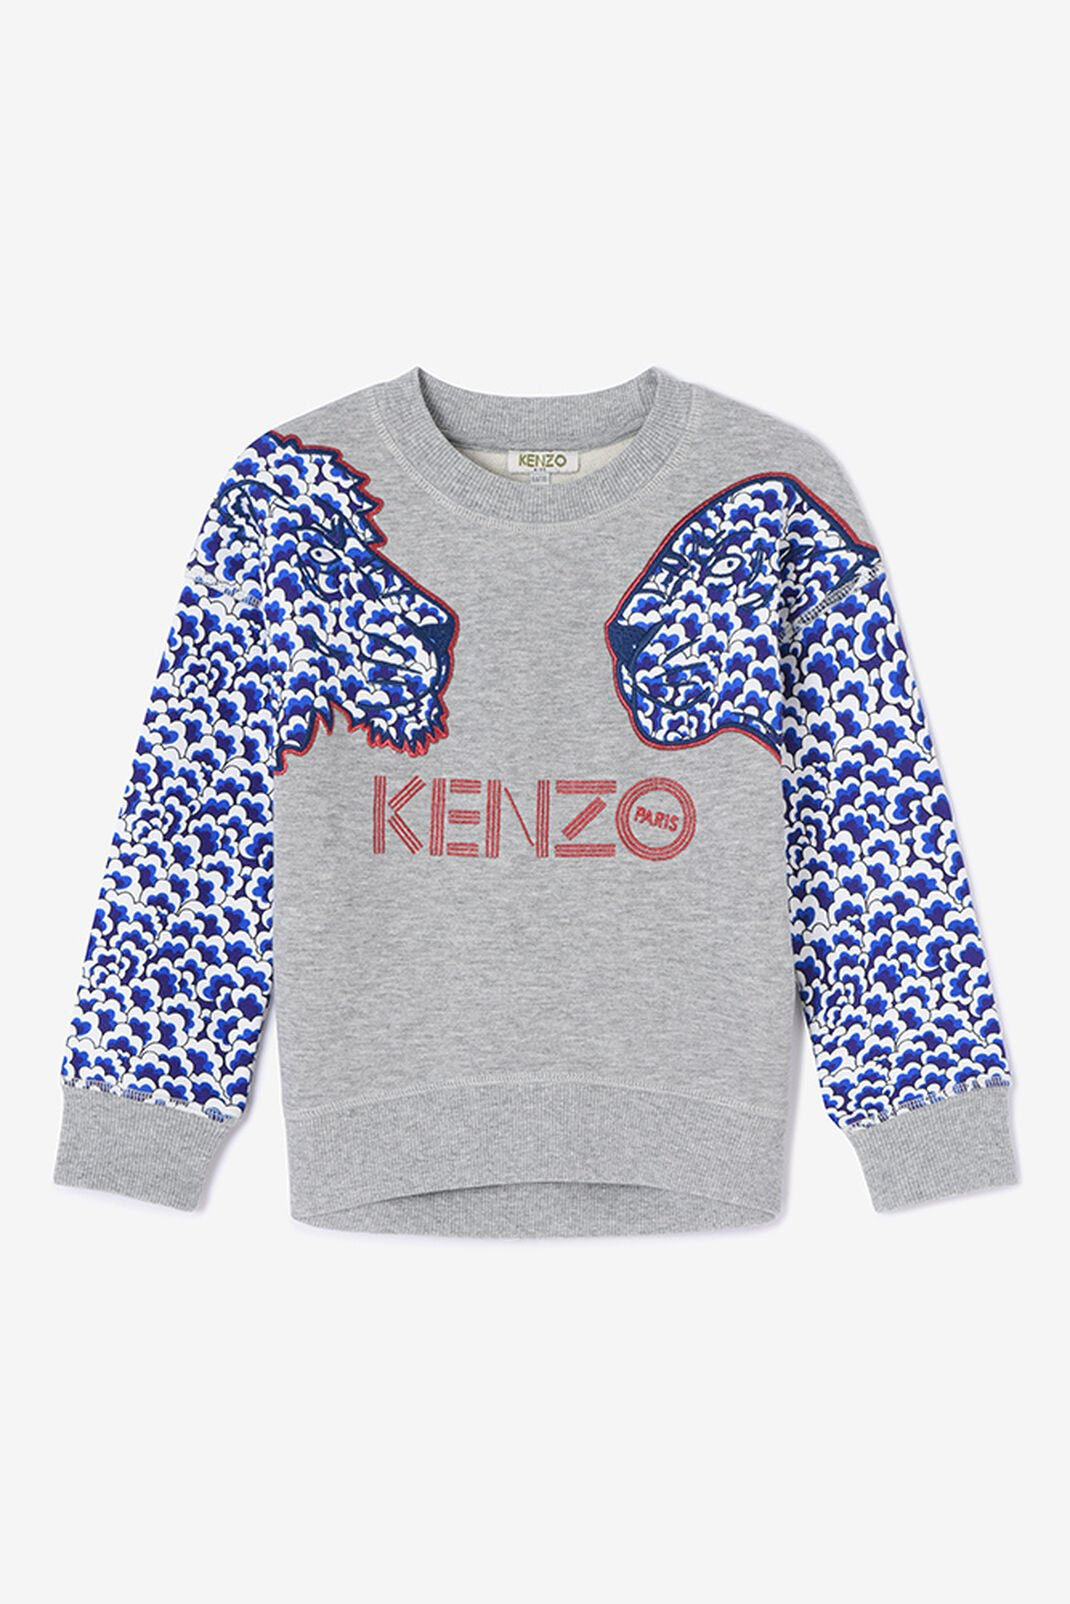 PEARL GREY Tiger Friends x Popcorn sweatshirt for women KENZO